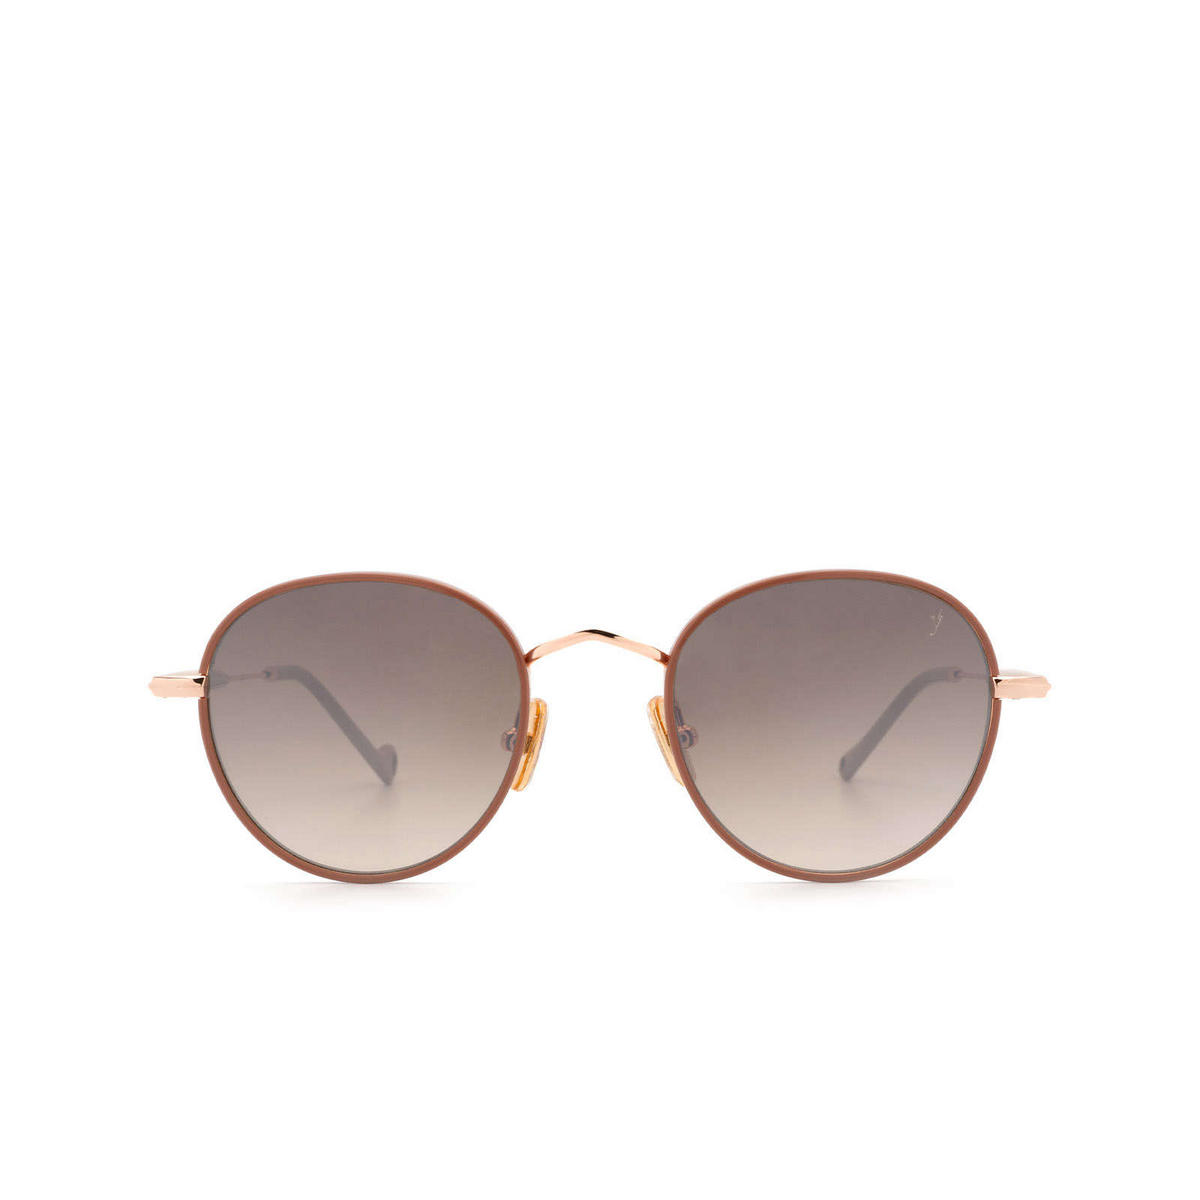 Eyepetizer® Round Sunglasses: Cinq color Pinkish Brown C.9-E-J-18F - front view.